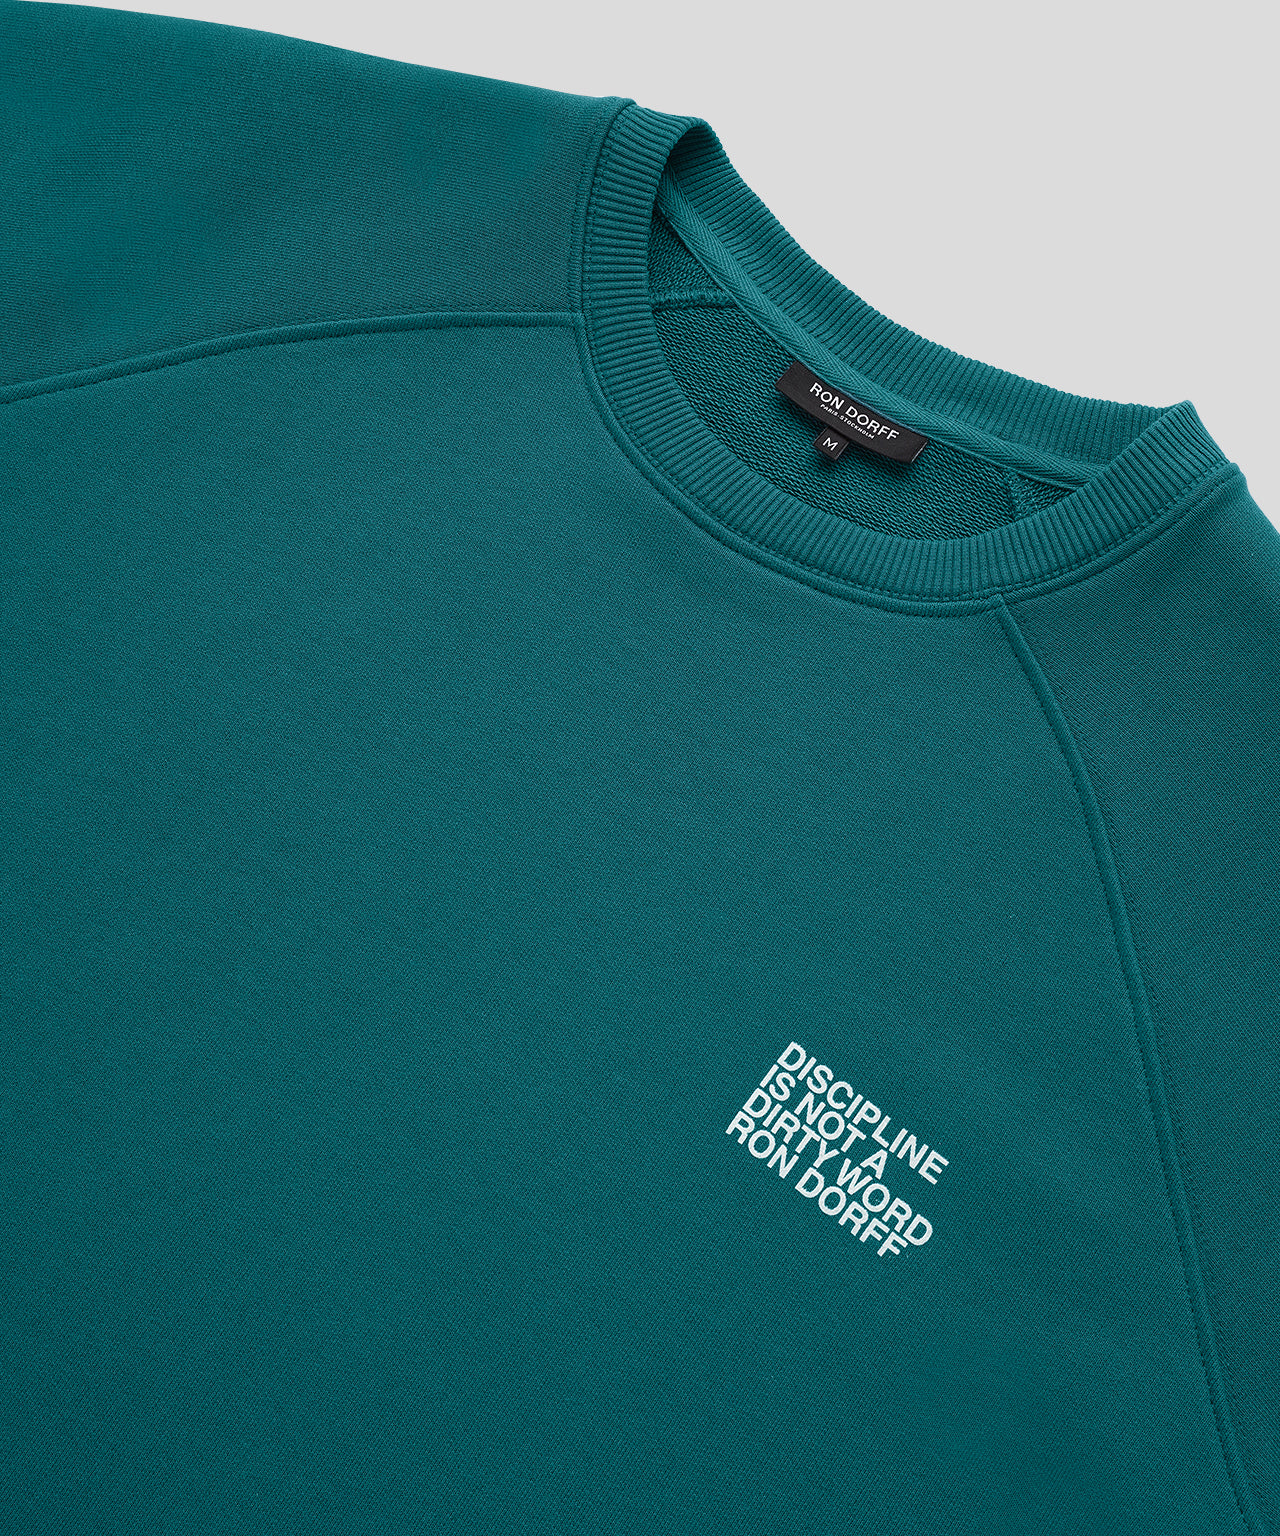 Sweatshirt DISCIPLINE Small Print - green light